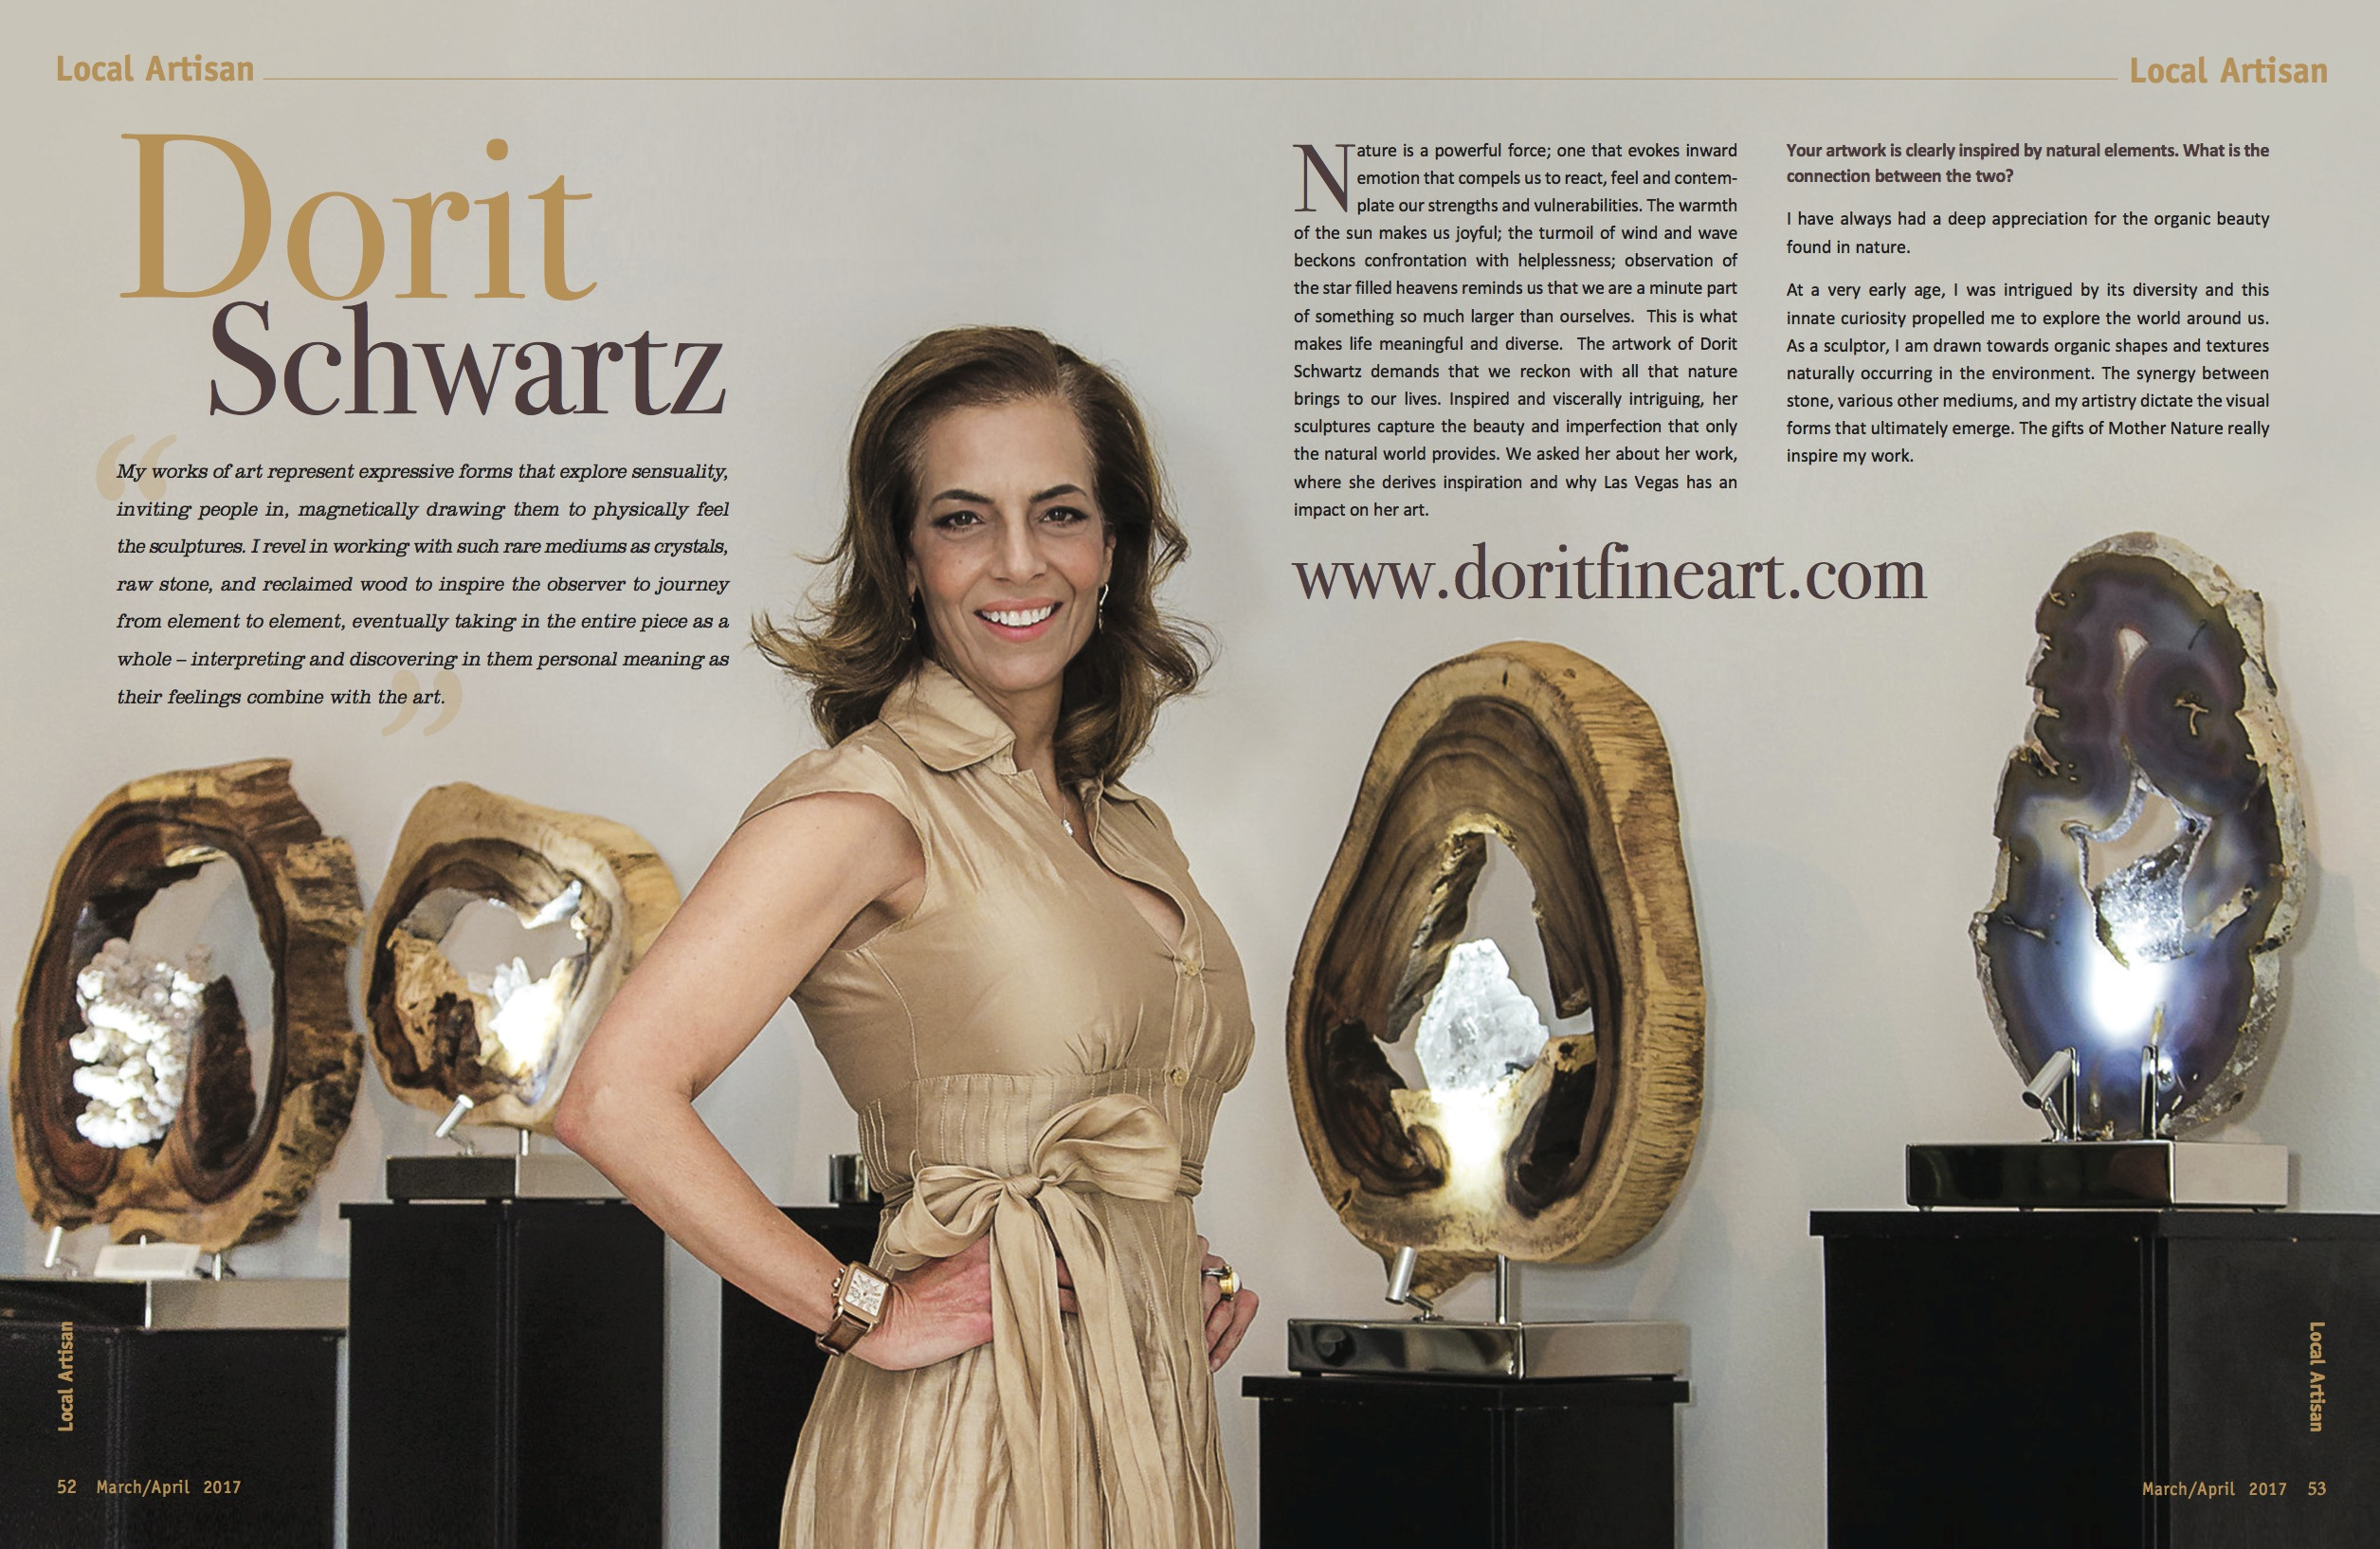 DORIT SCHWARTZ FEATURED AS A LOCAL ARTISAN IN GREATER LAS VEGAS